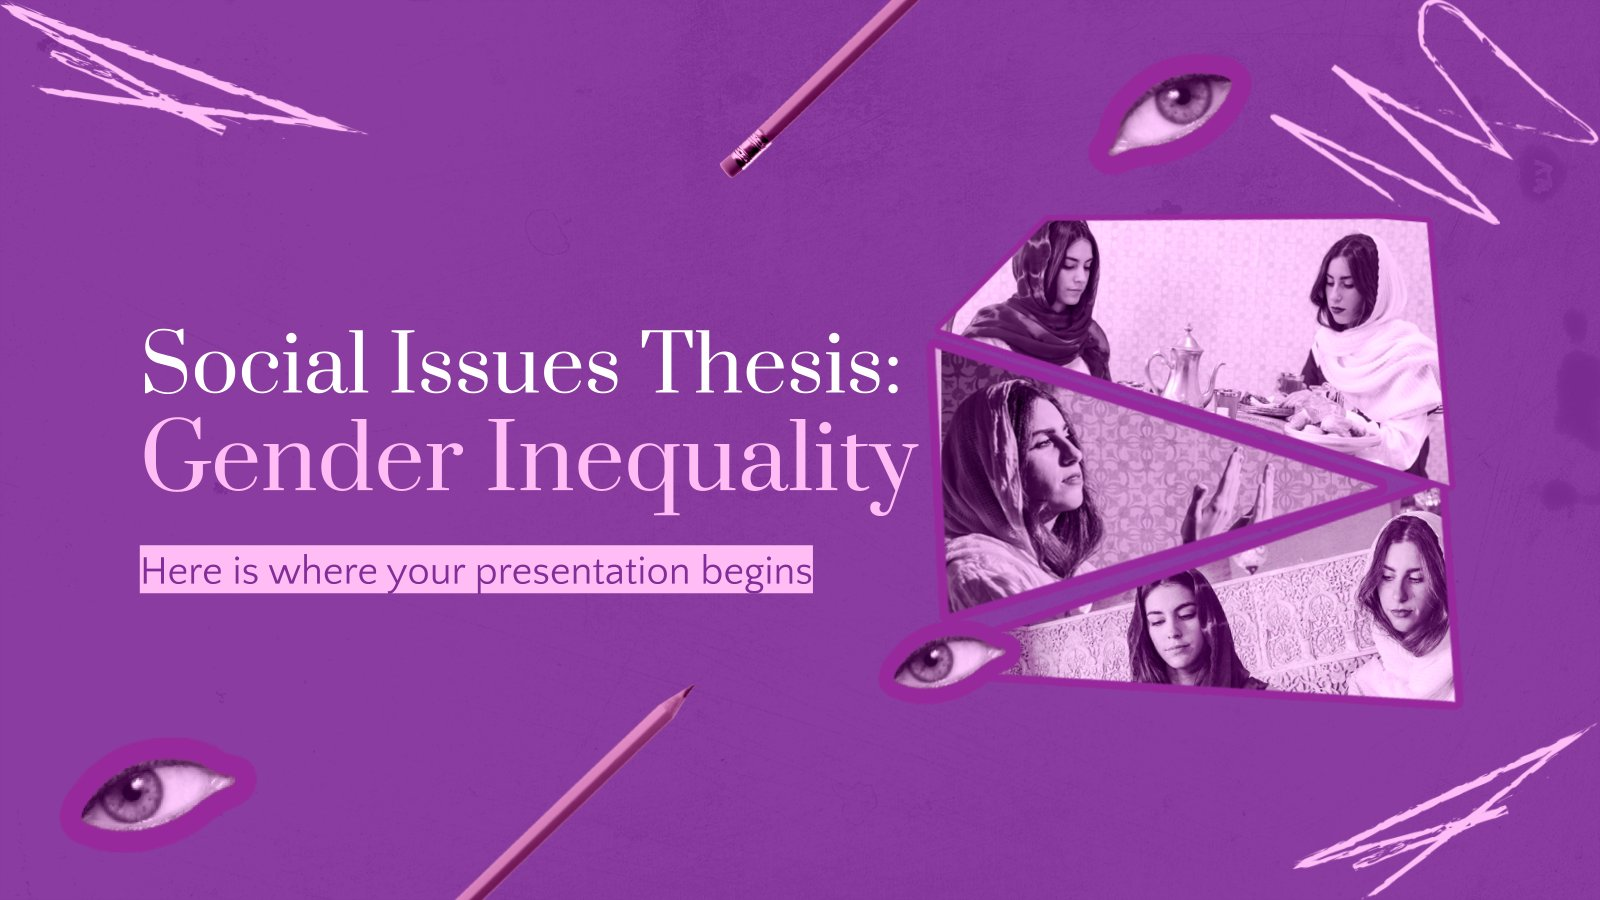 Social Issues Thesis: Gender Inequality presentation template